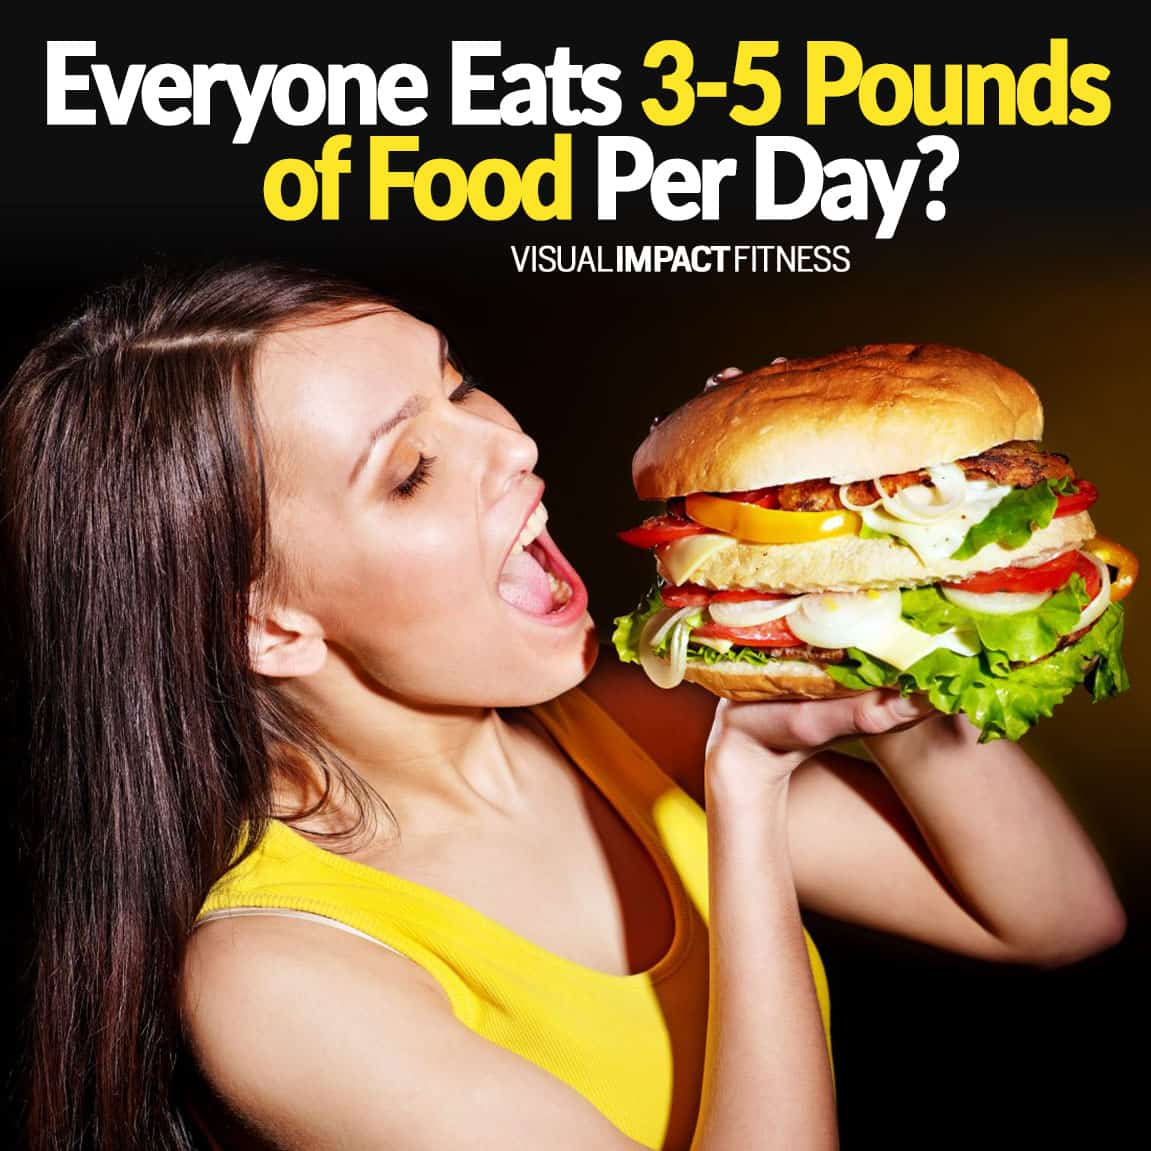 Everyone Eats 3-5 Pounds of Food Per Day?